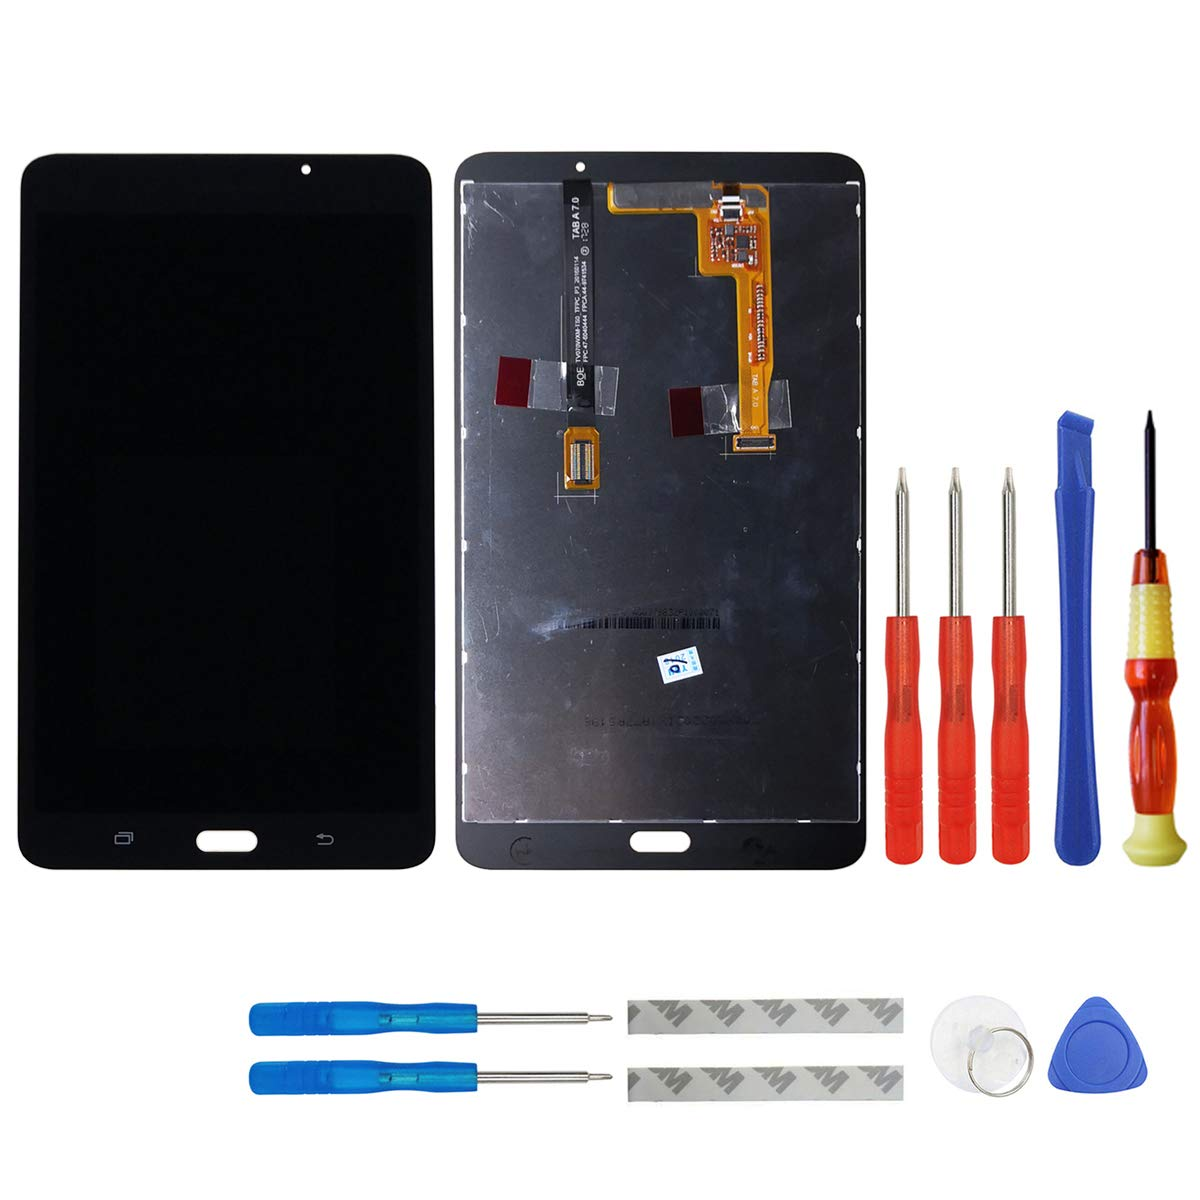 swark LCD Compatible with Samsung Galaxy Tab A 7.0 WiFi Tablet SM-T280 LCD Display Digitizer Touch Screen Assembly (Black) + Tools(Not for 3G Version & T285 & No Earpiece Hole)